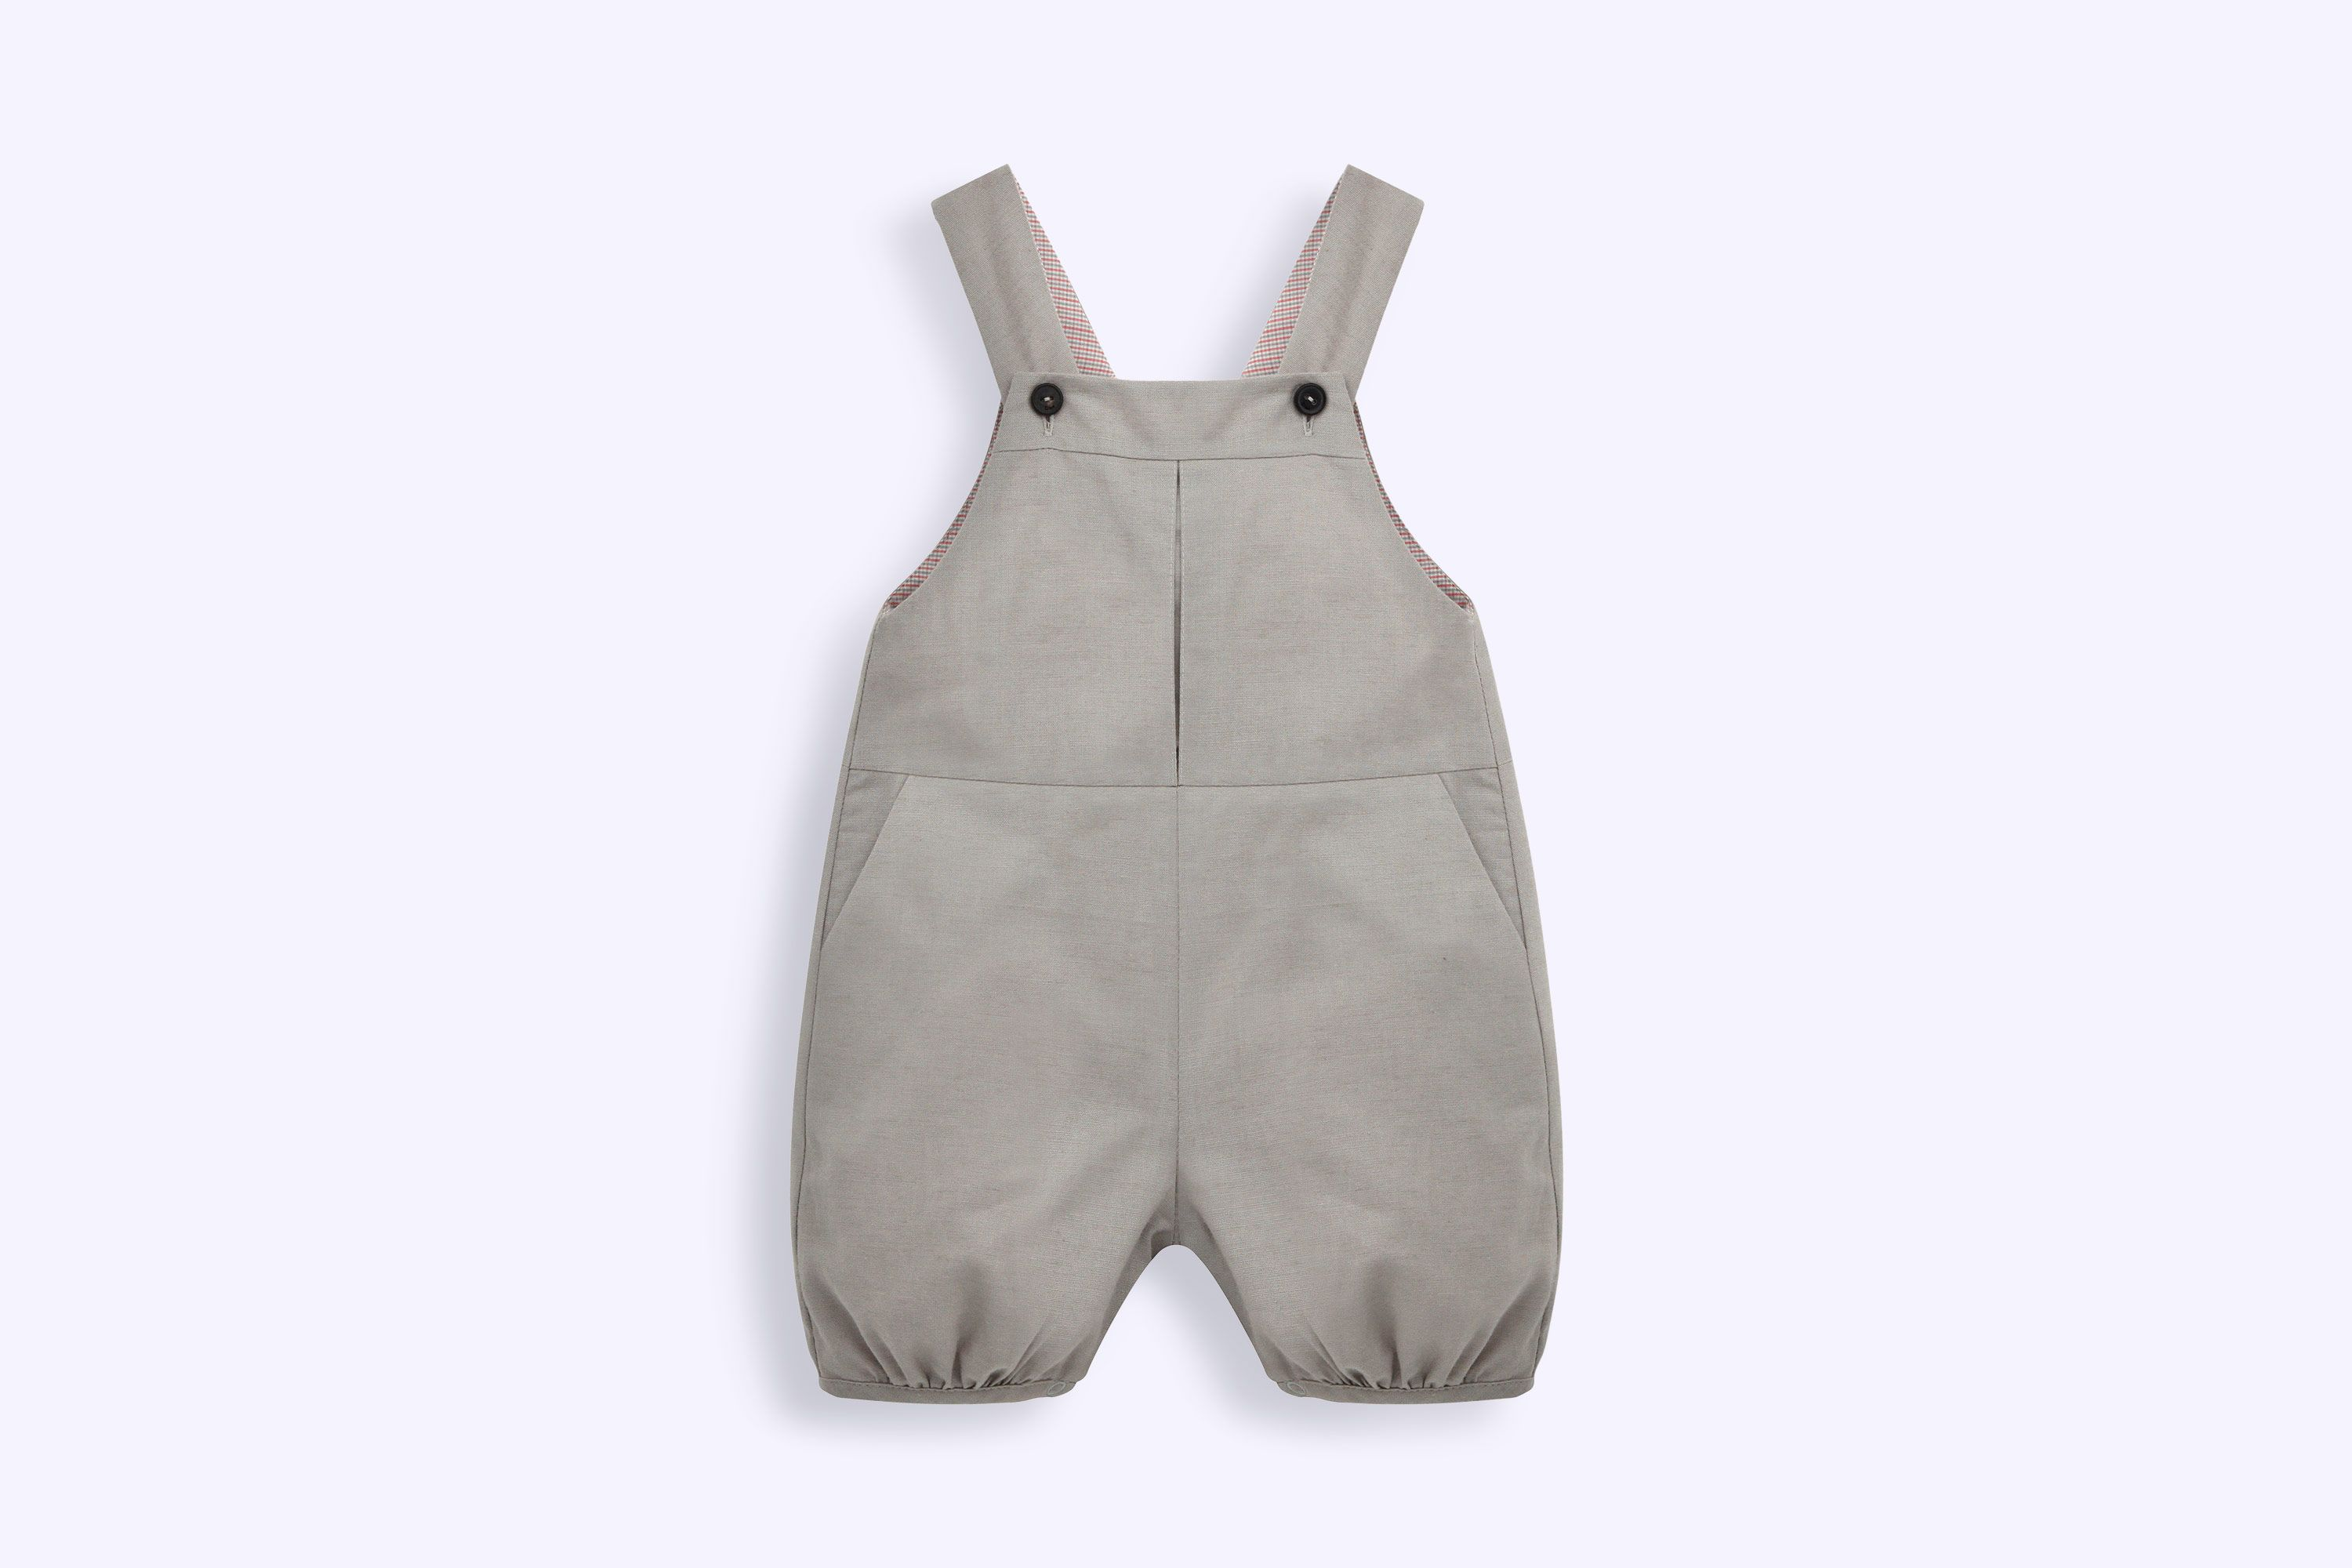 2c10514bfc13 Baby Dior Boy in grey overalls